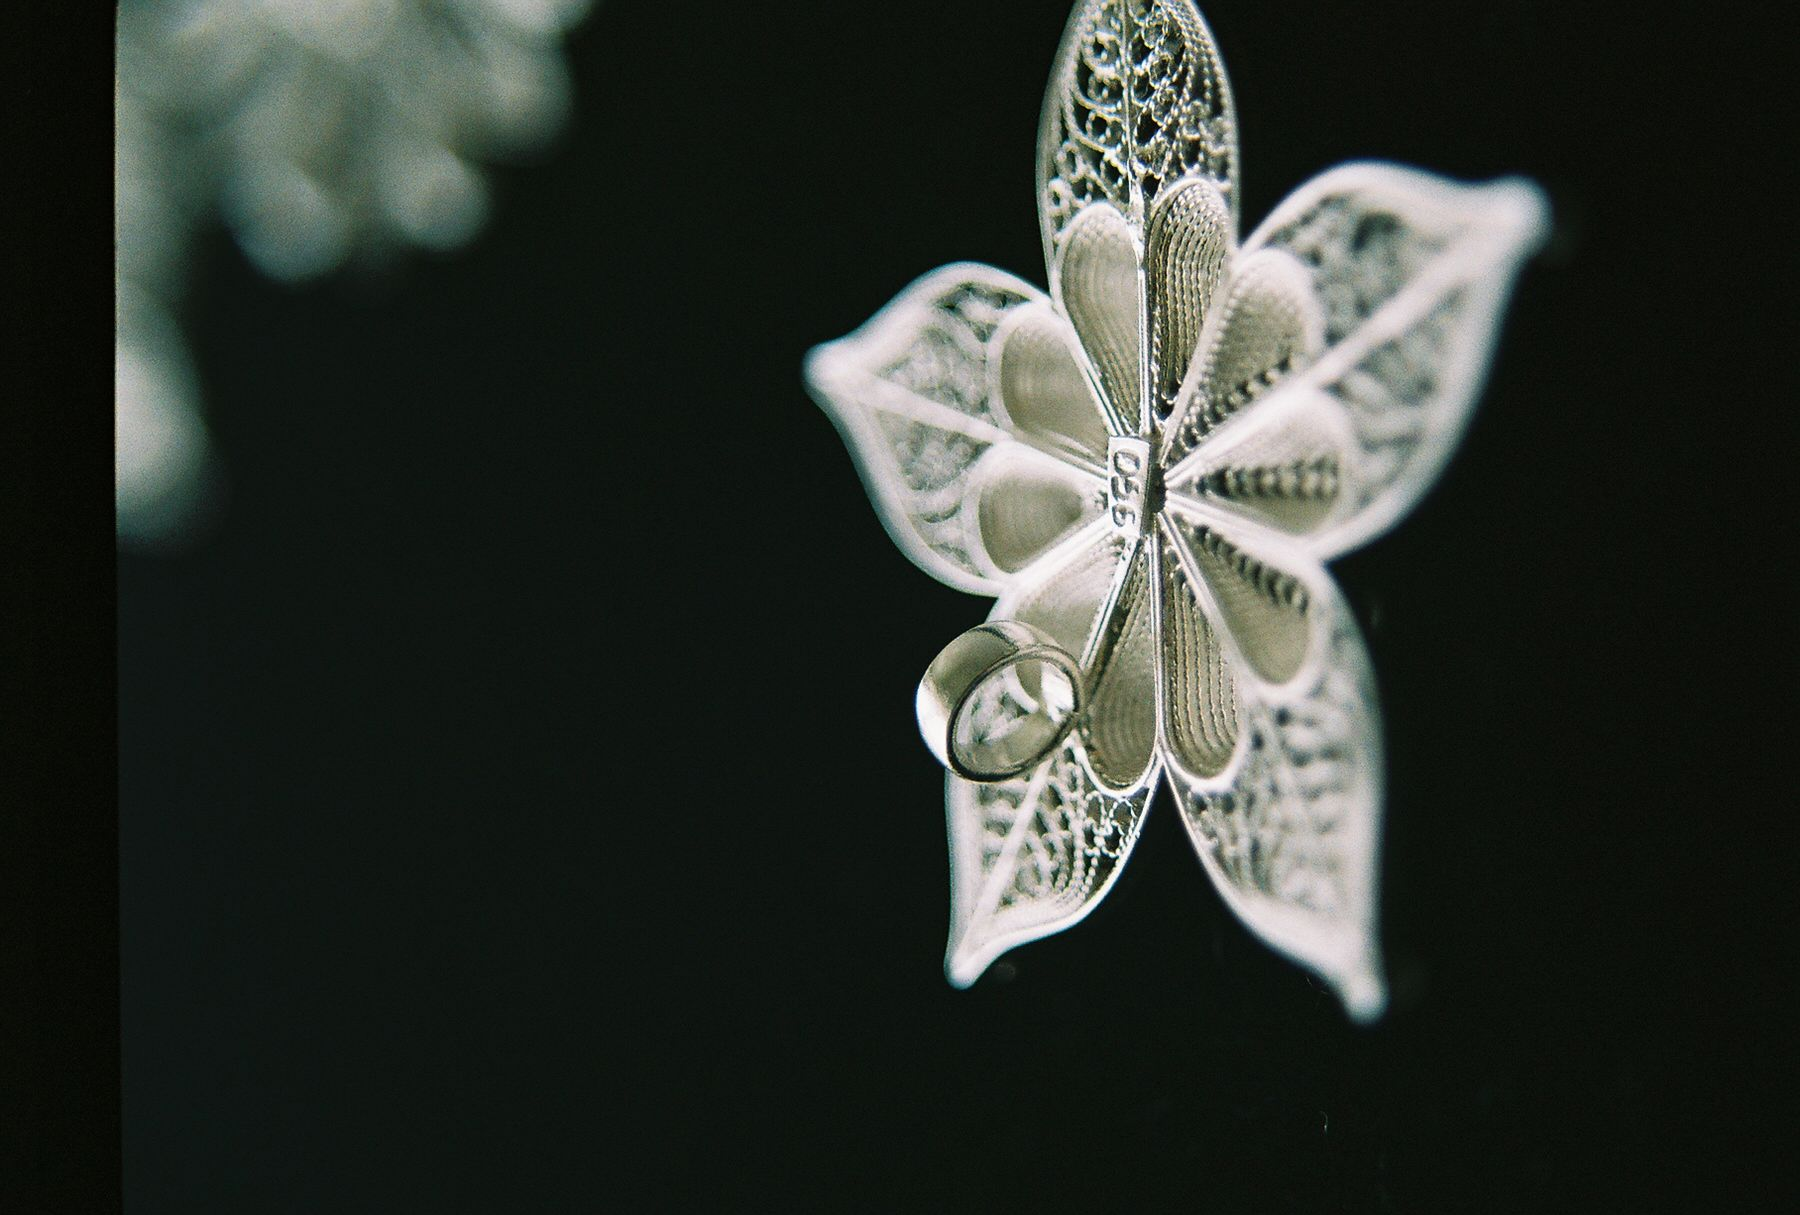 9.50 silver filigree jewelry